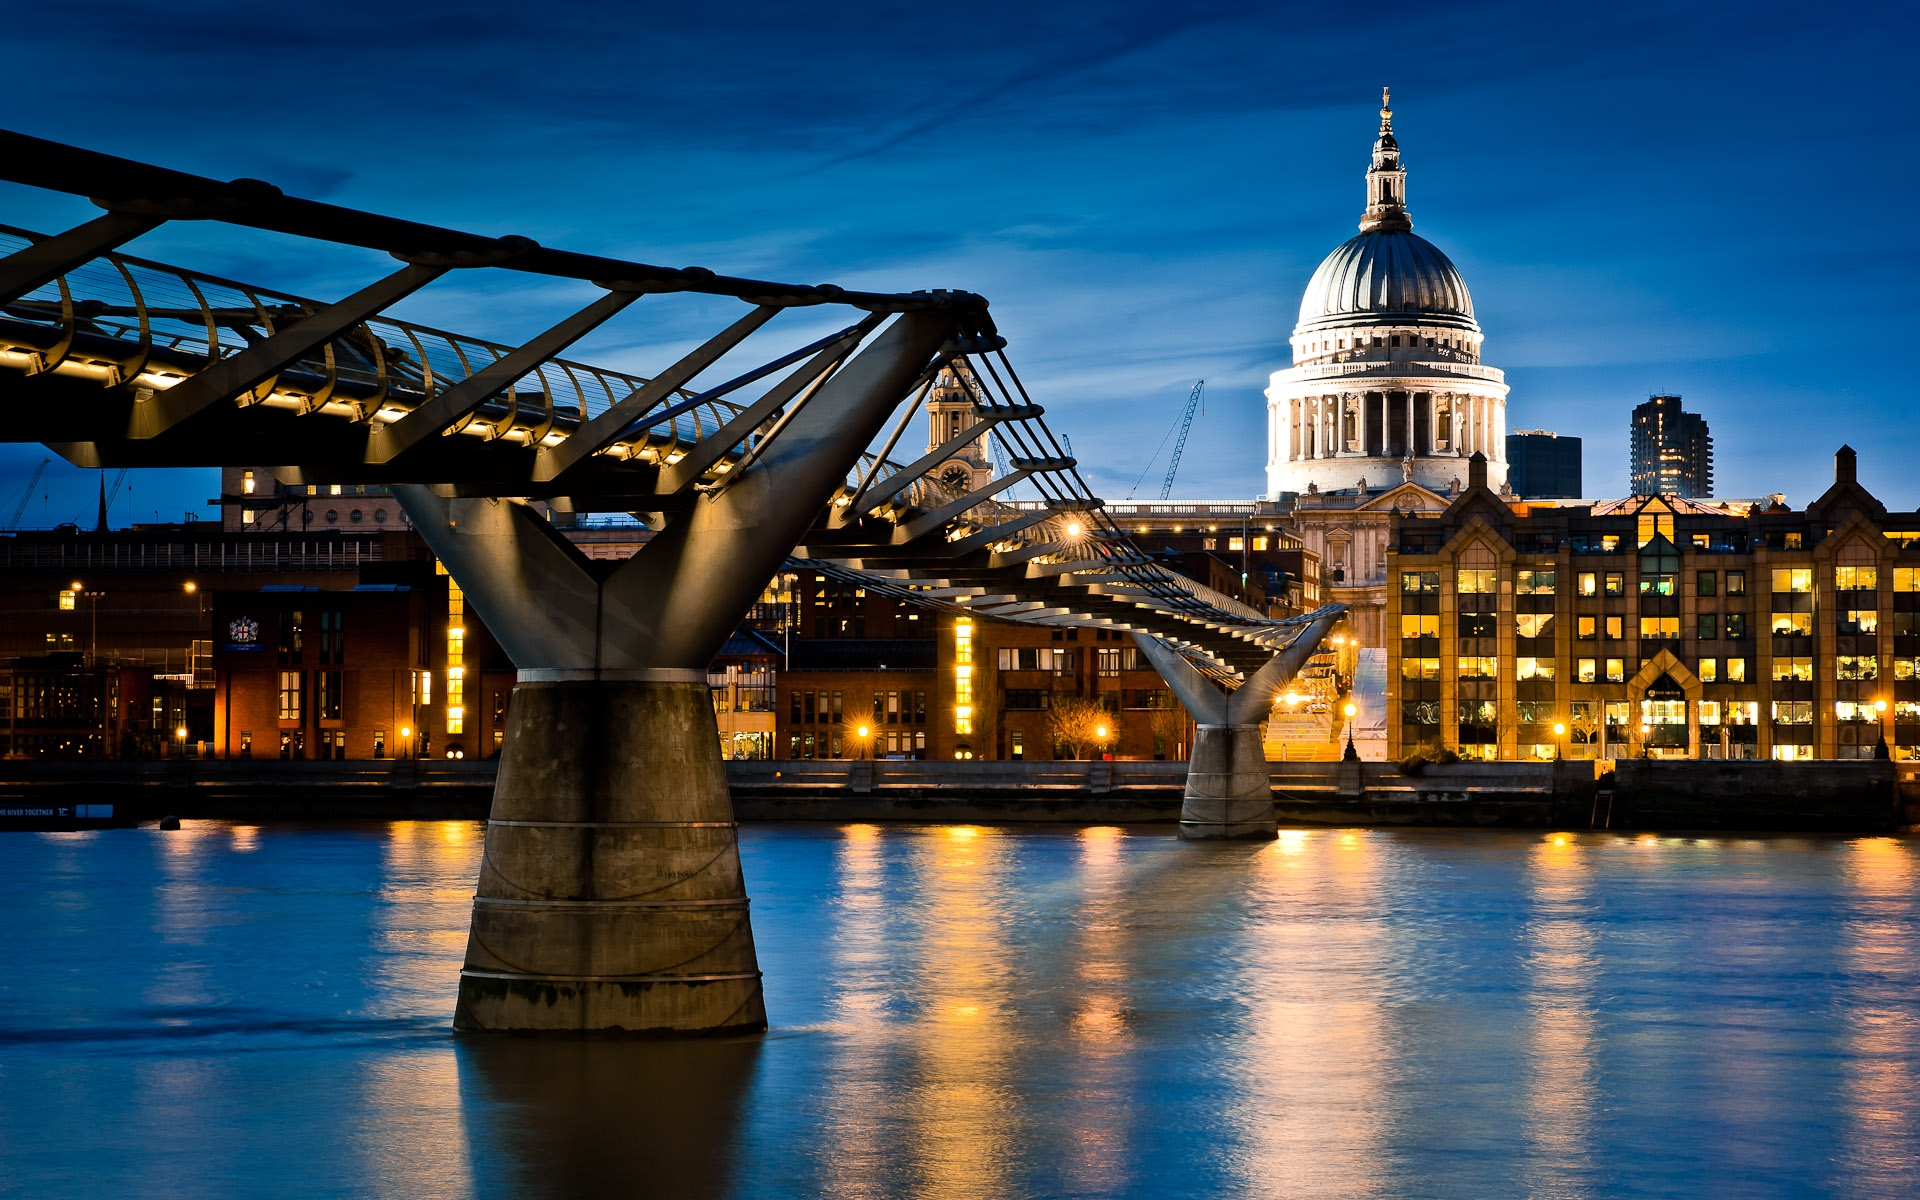 St Paul's cathedral and millennium bridge at night